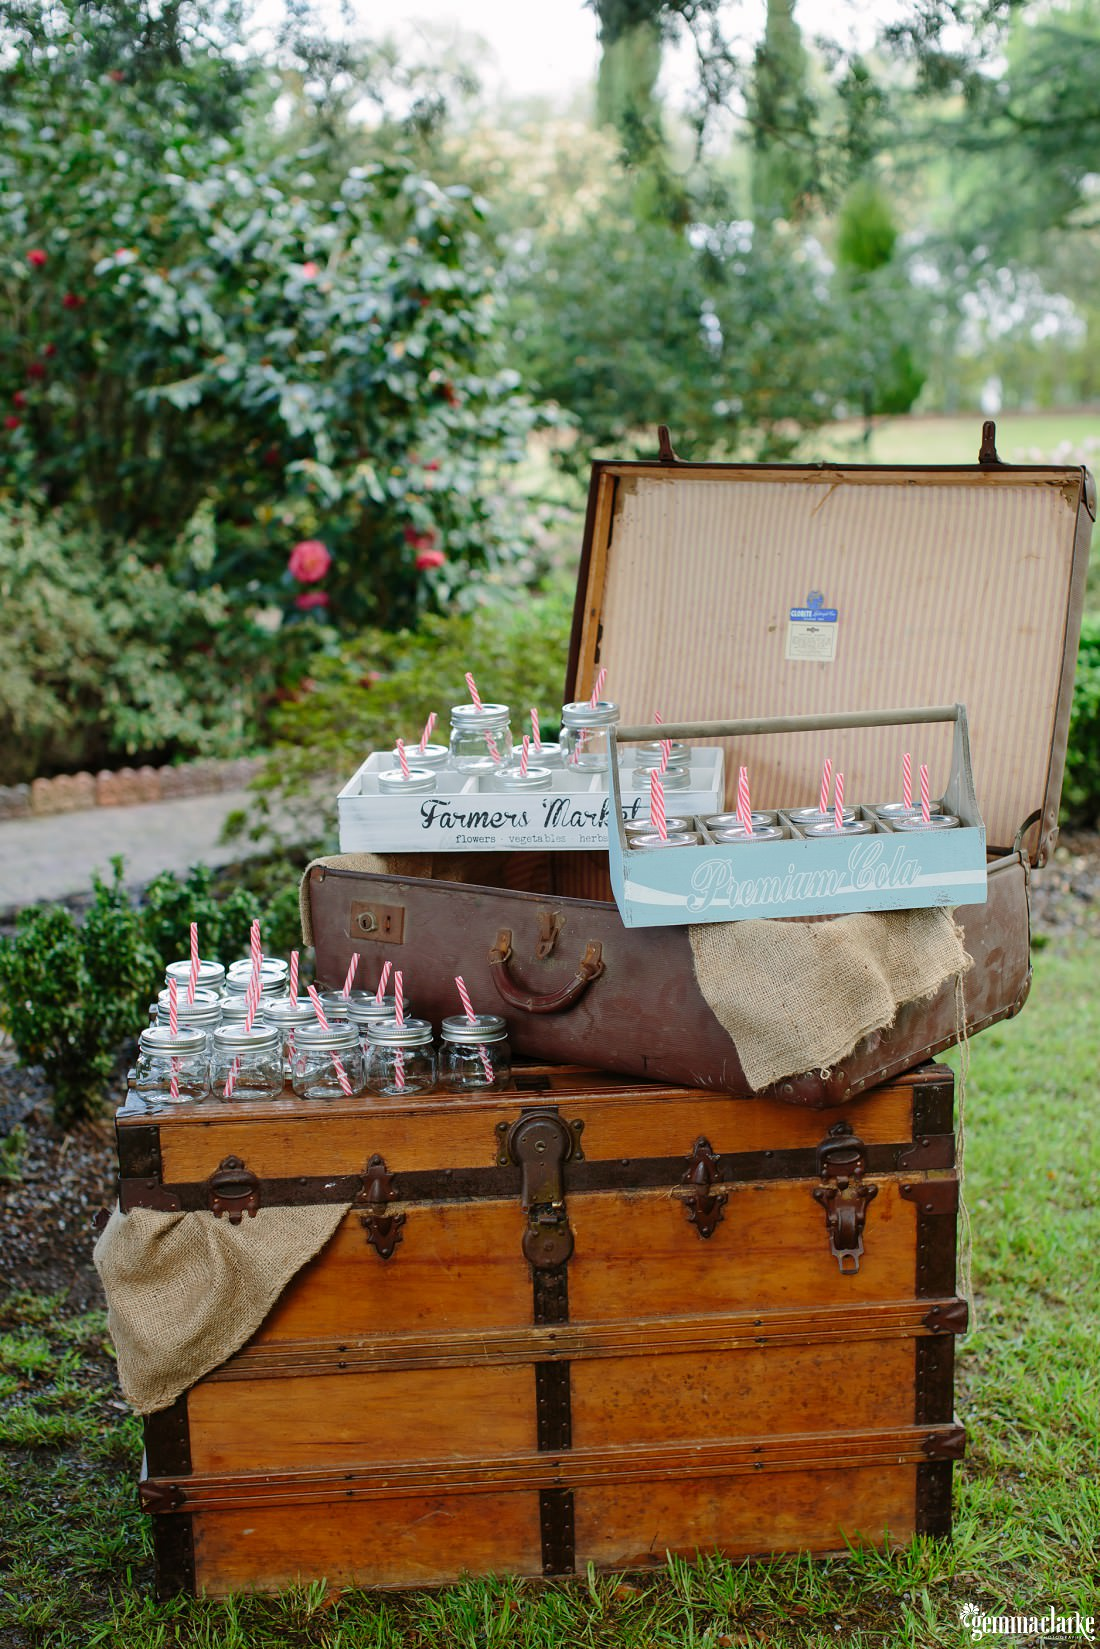 Glass jars with straws through the lid, some in wooden boxes and on a suitcase and a wooden chest